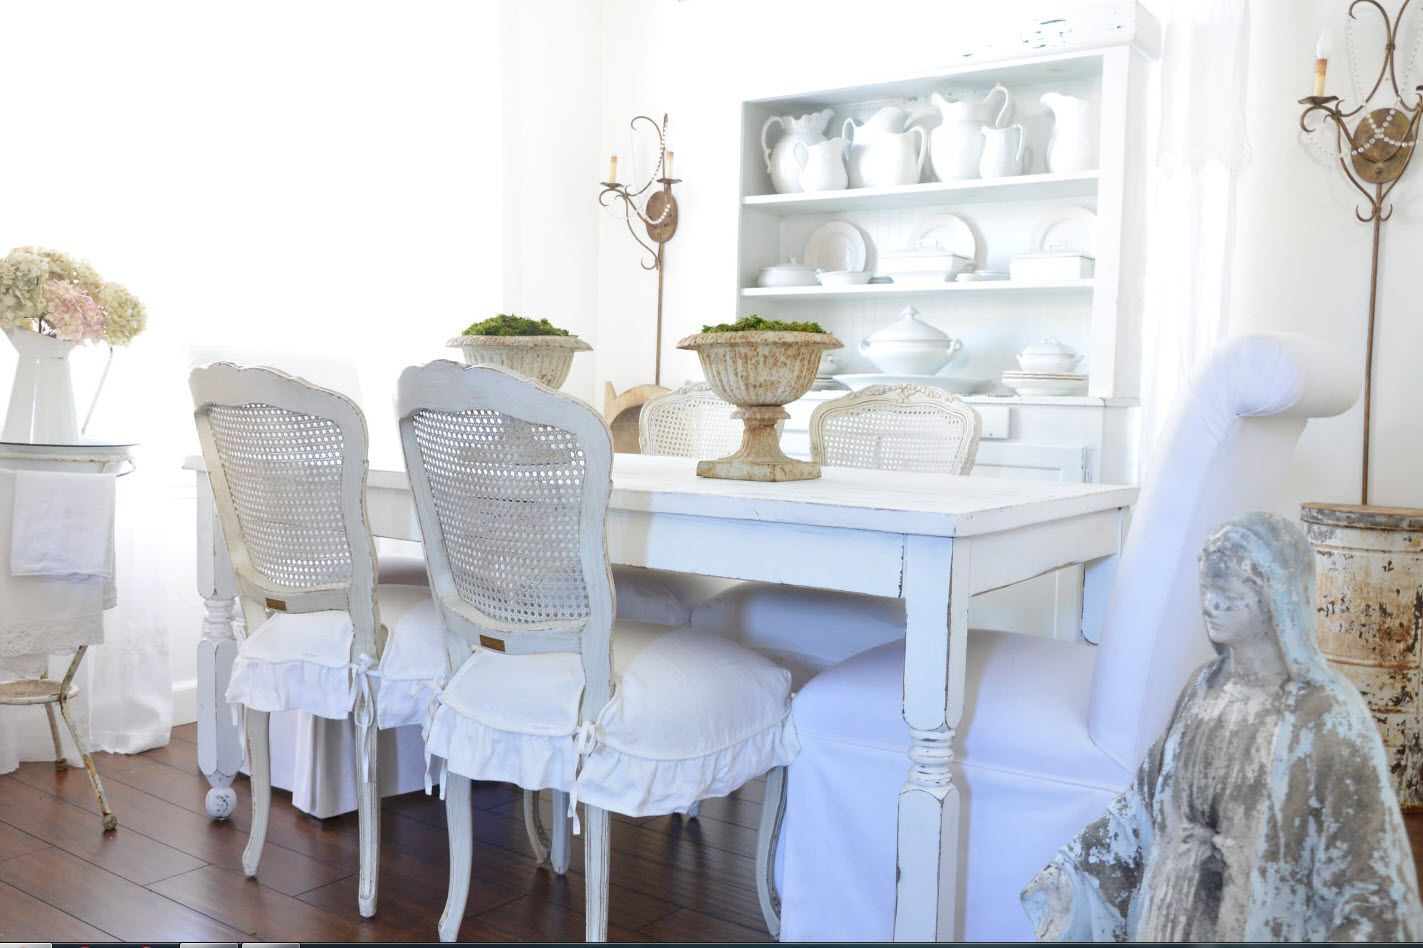 White matted chair paint in the Provence styled room